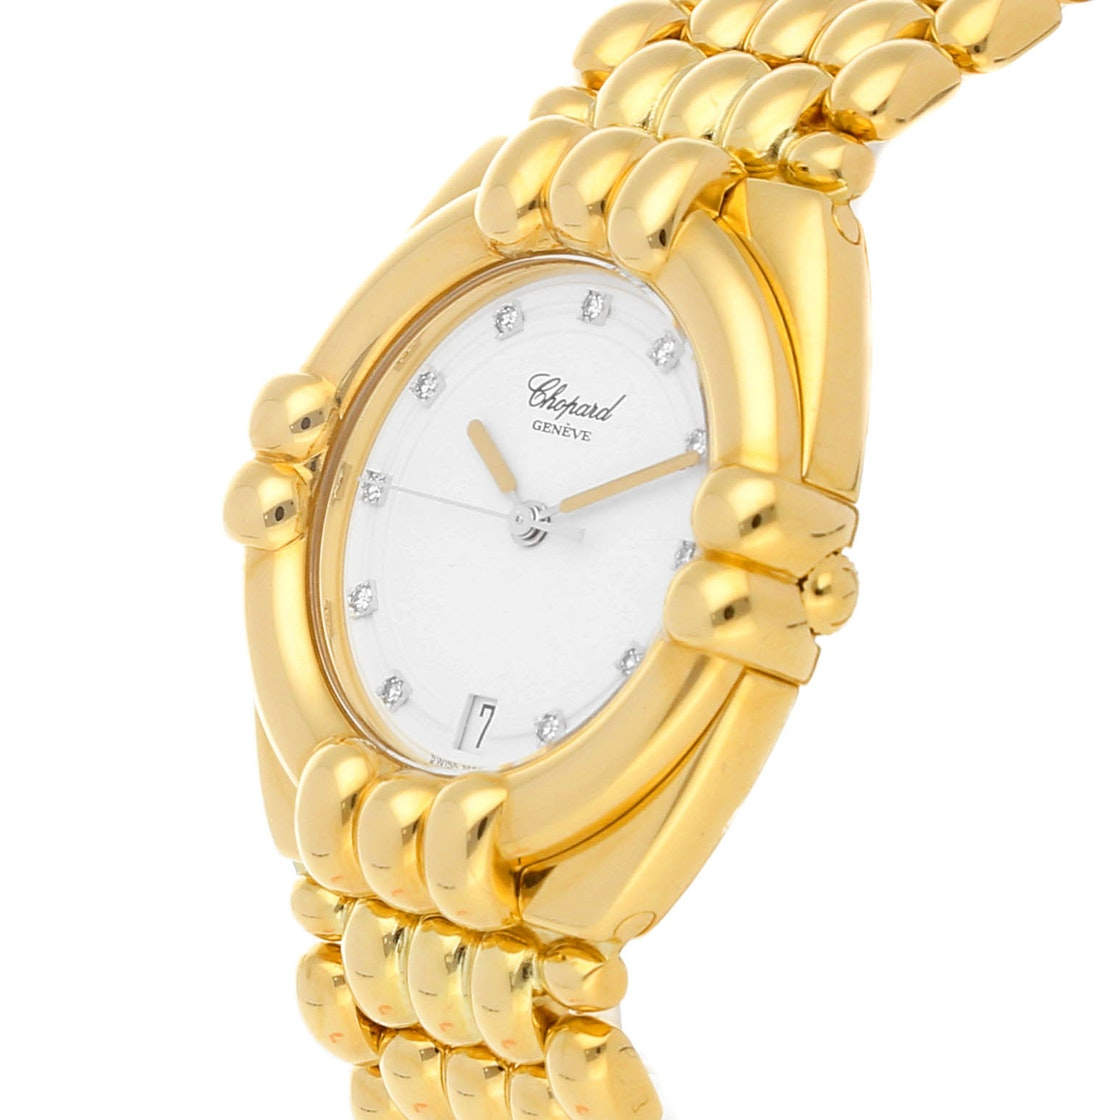 Chopard Gstaad 33/2916